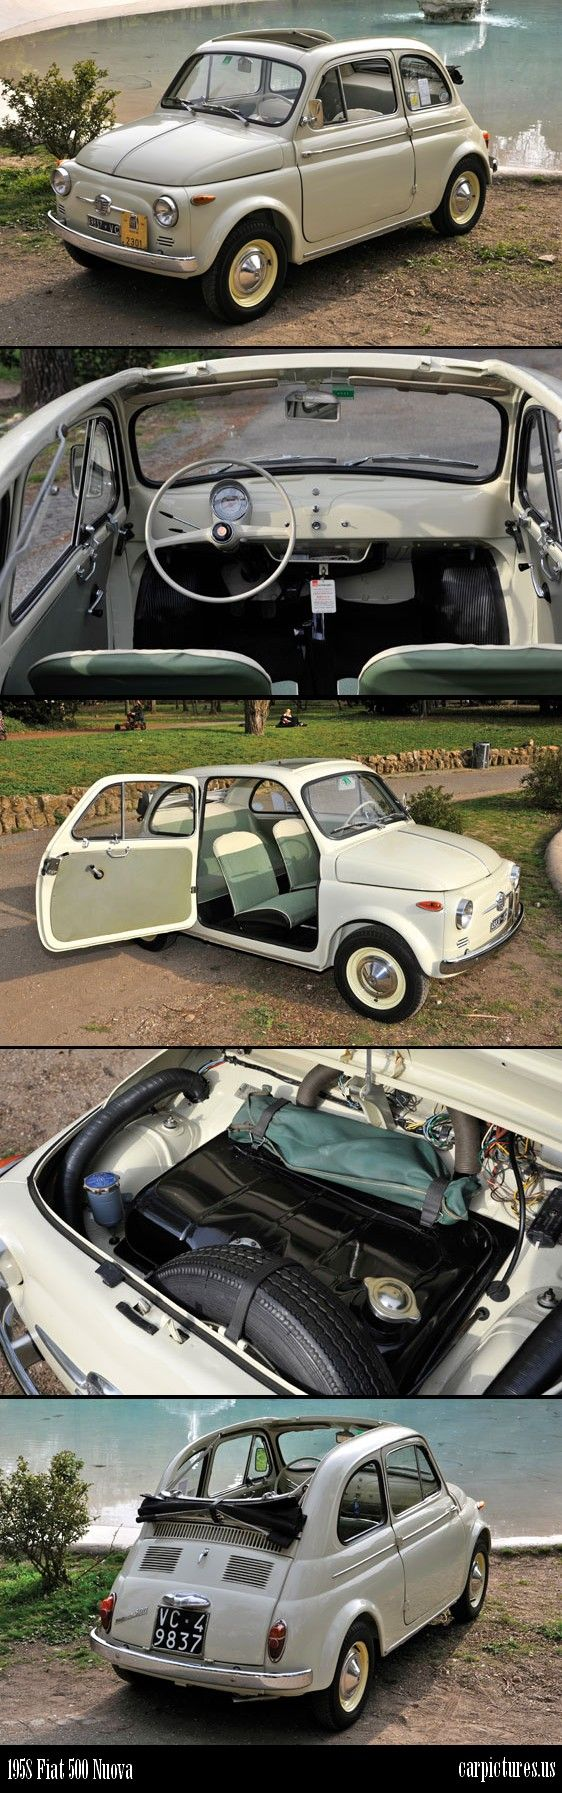 1958 Fiat 500 Nuova, just park it on the front porch and leave the keys in it. I love it.